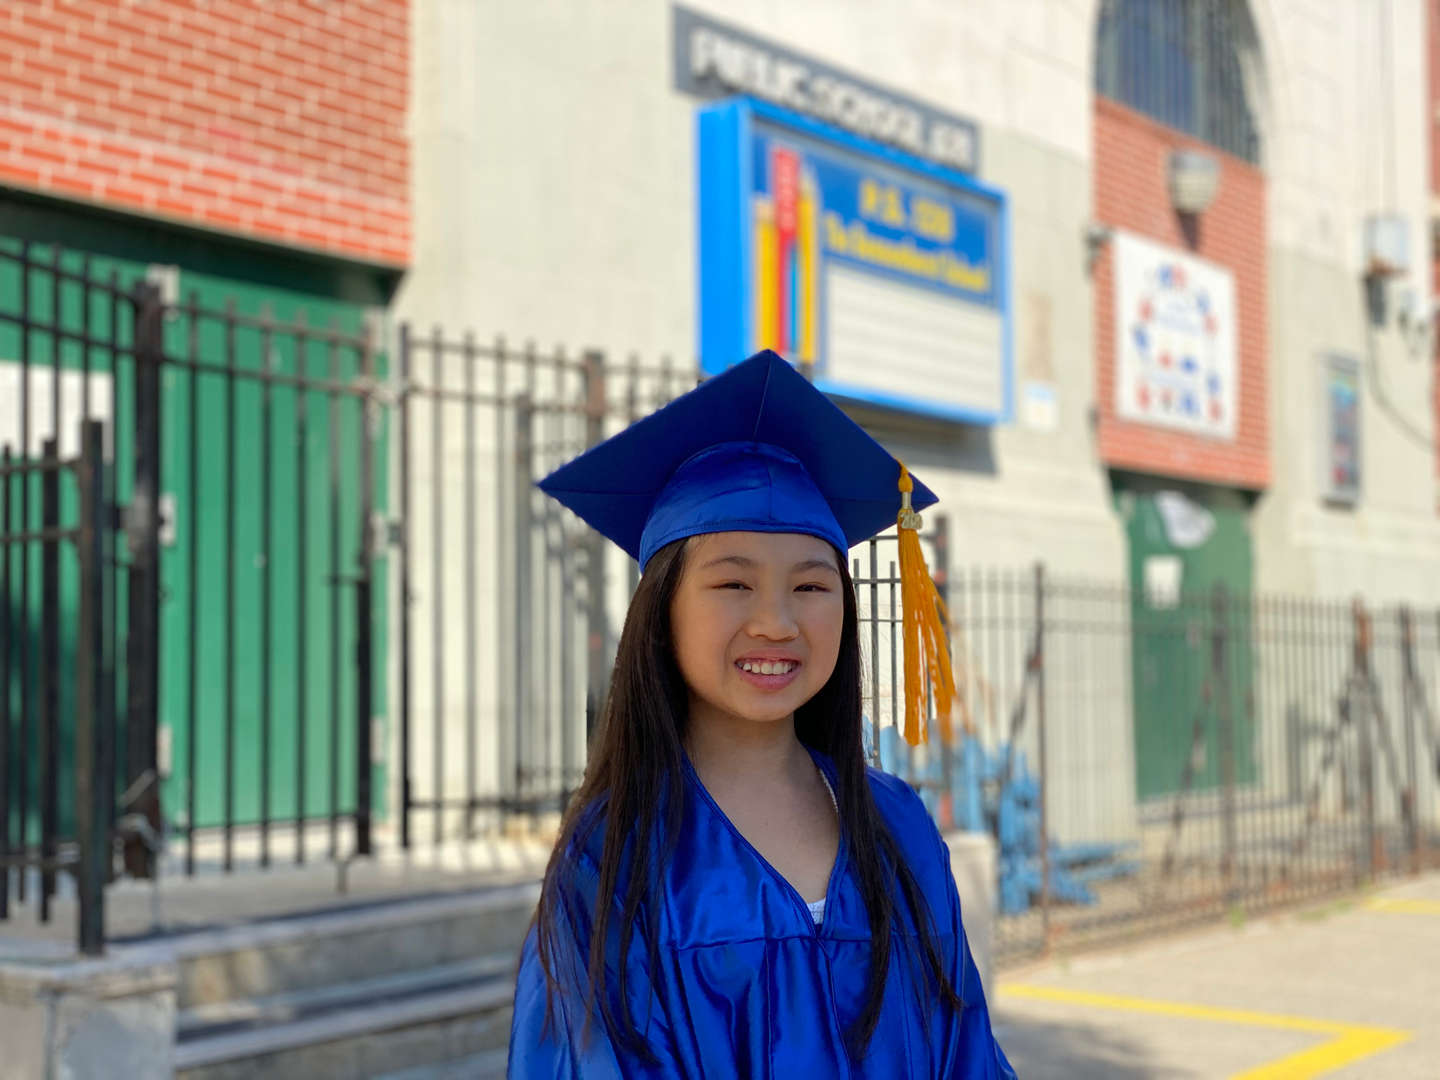 Fifth grade graduate smiling in front of school with cap and gown